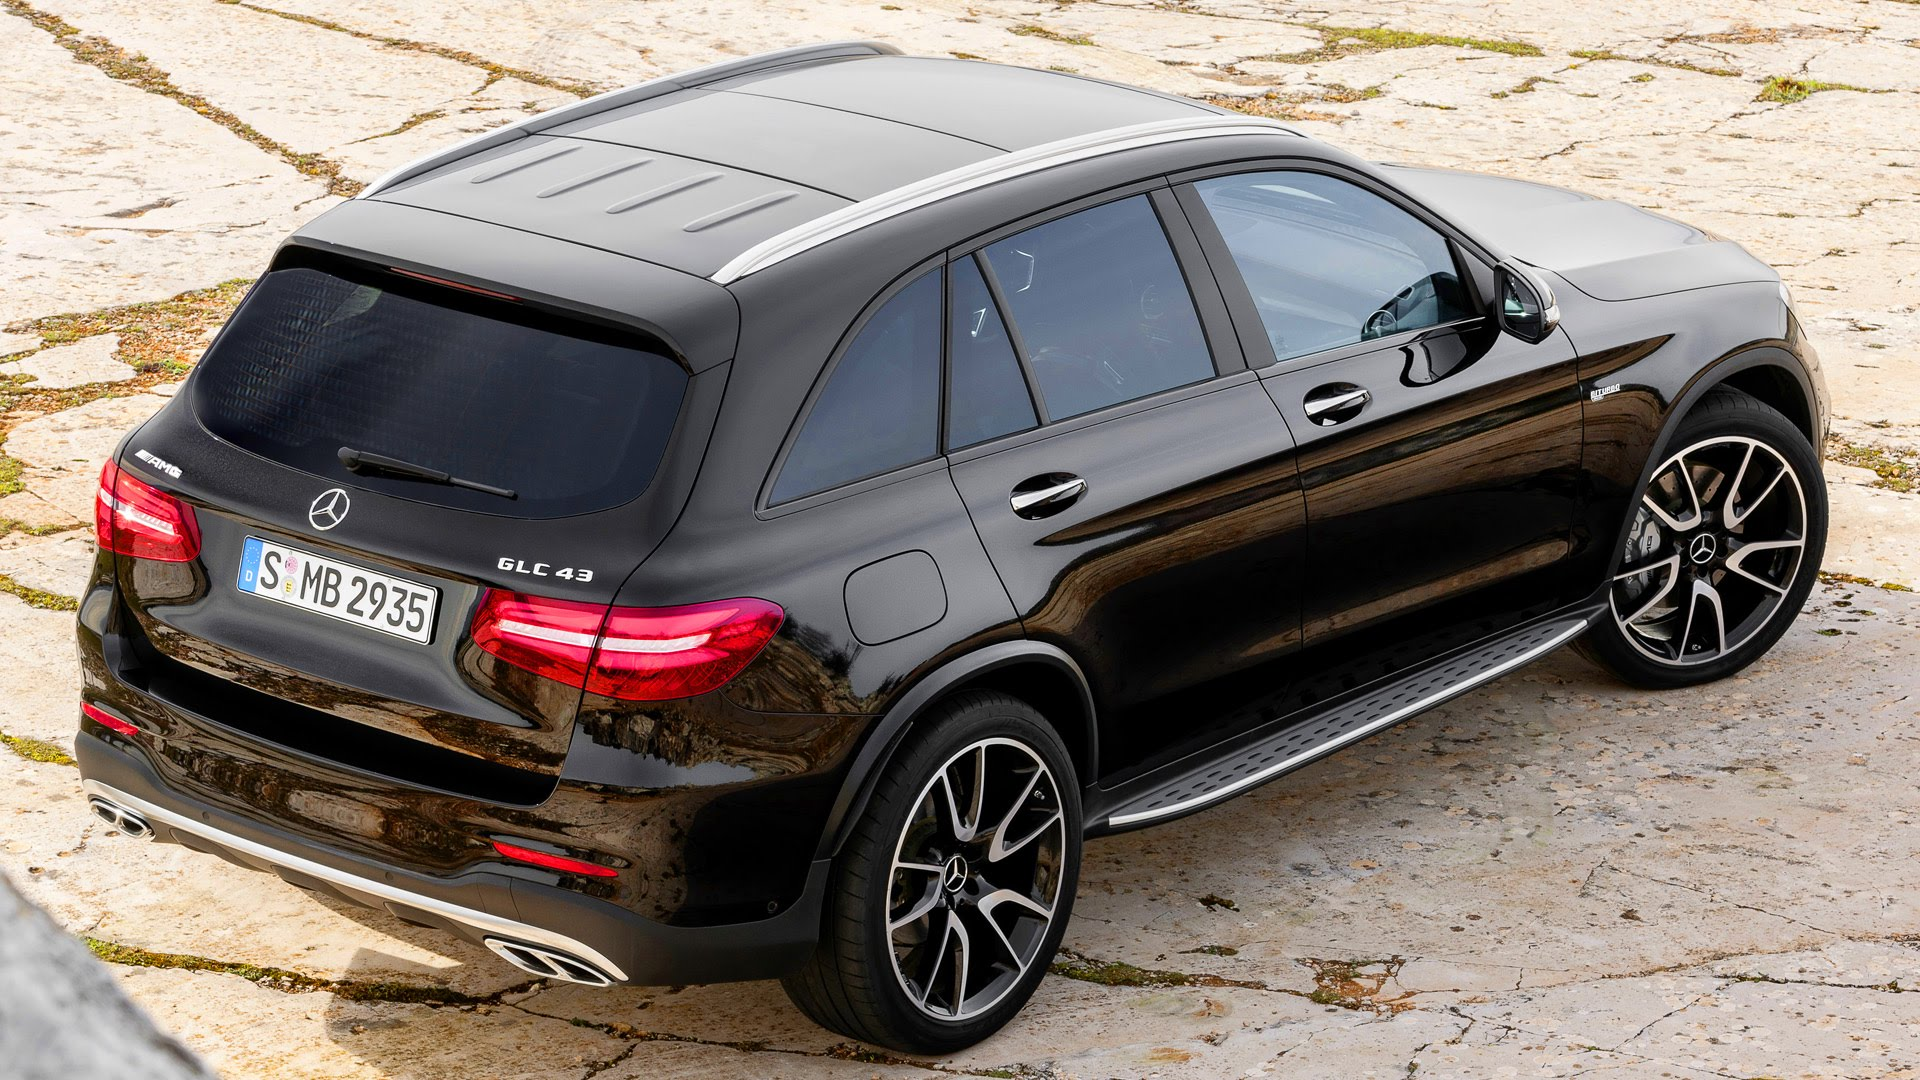 http://www.listadecarros.com/wp-content/uploads/2016/12/Mercedes-Benz-AMG-GLC43-4Matic-Coupe-2017-6.jpg